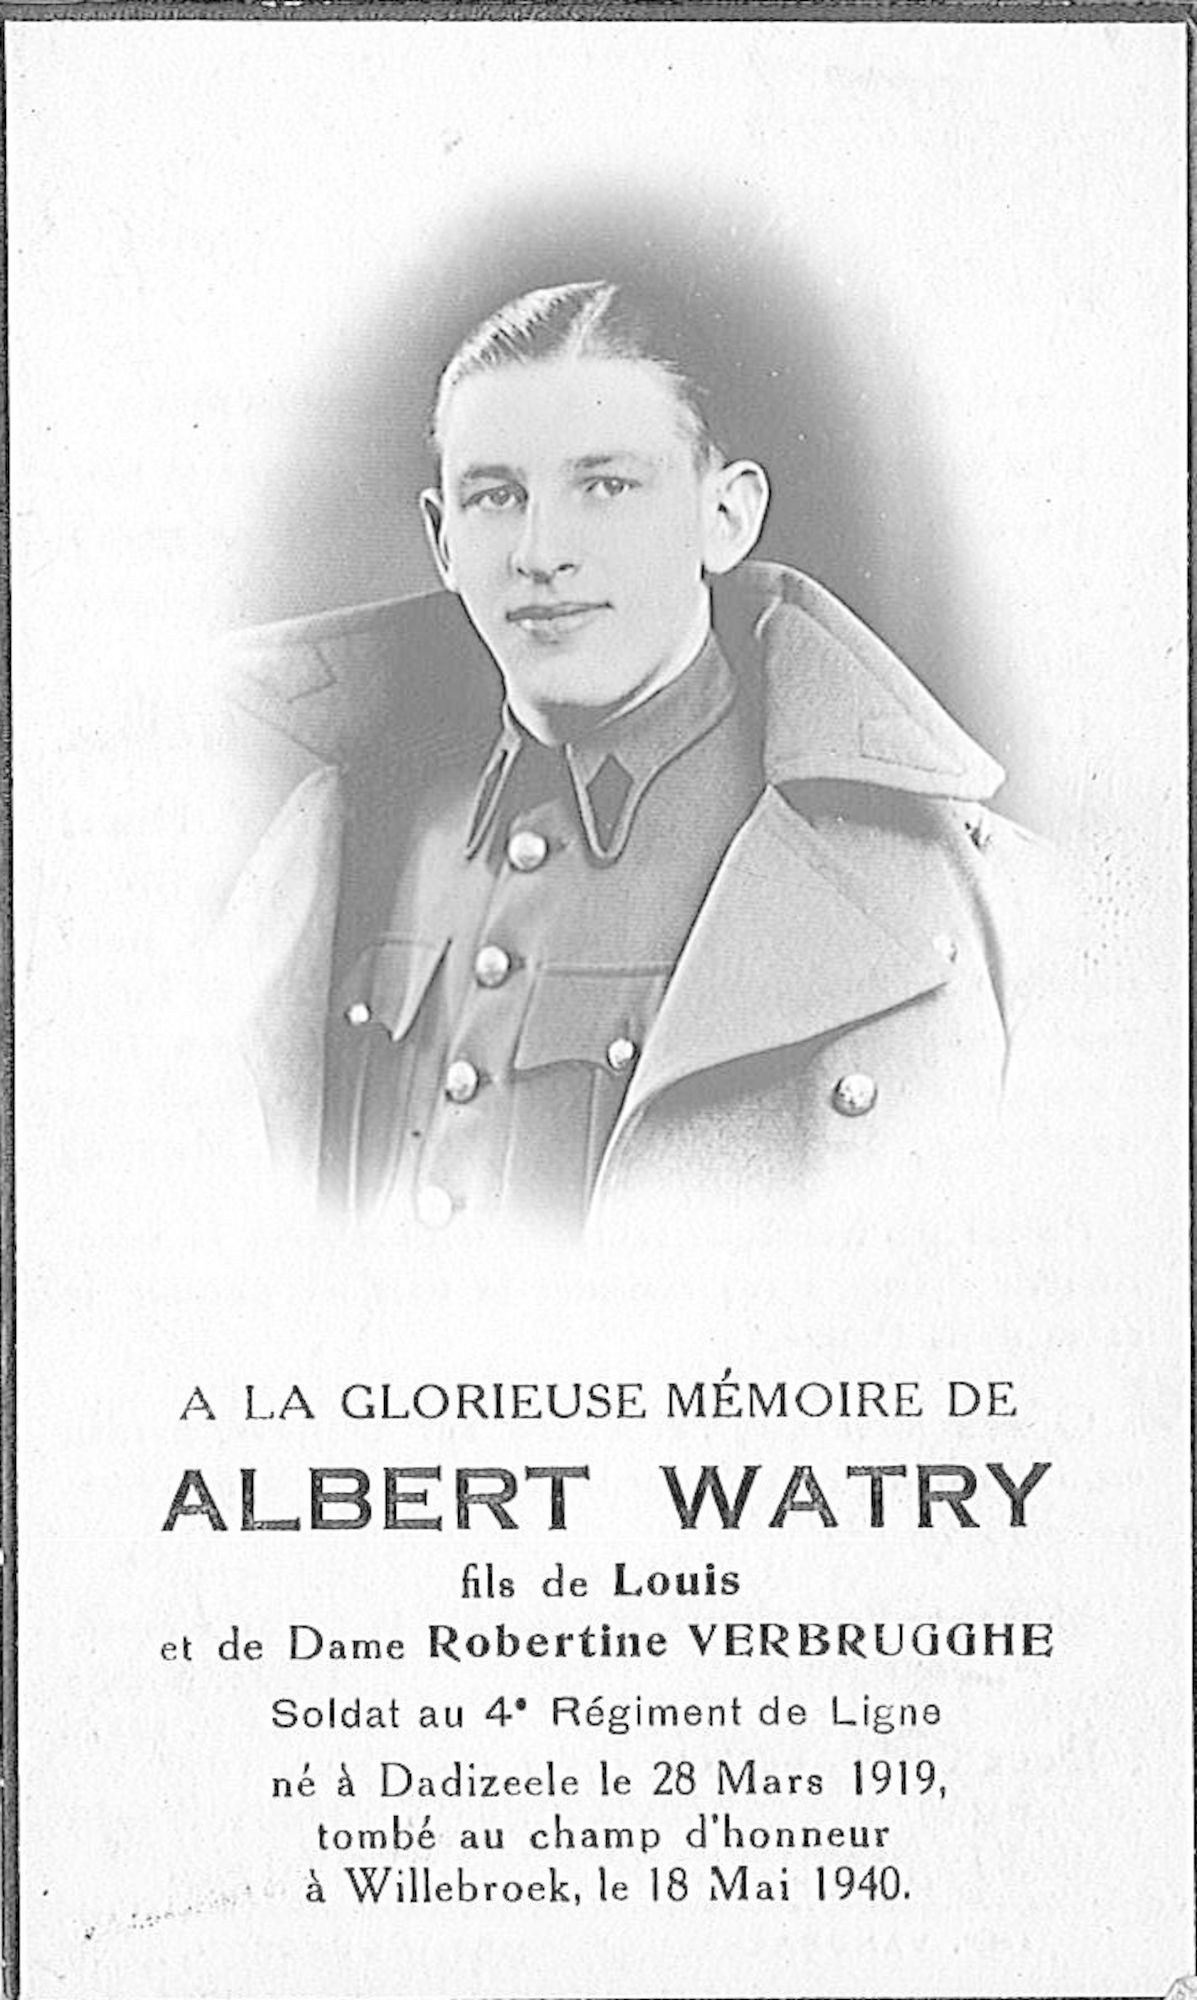 Albert Watry